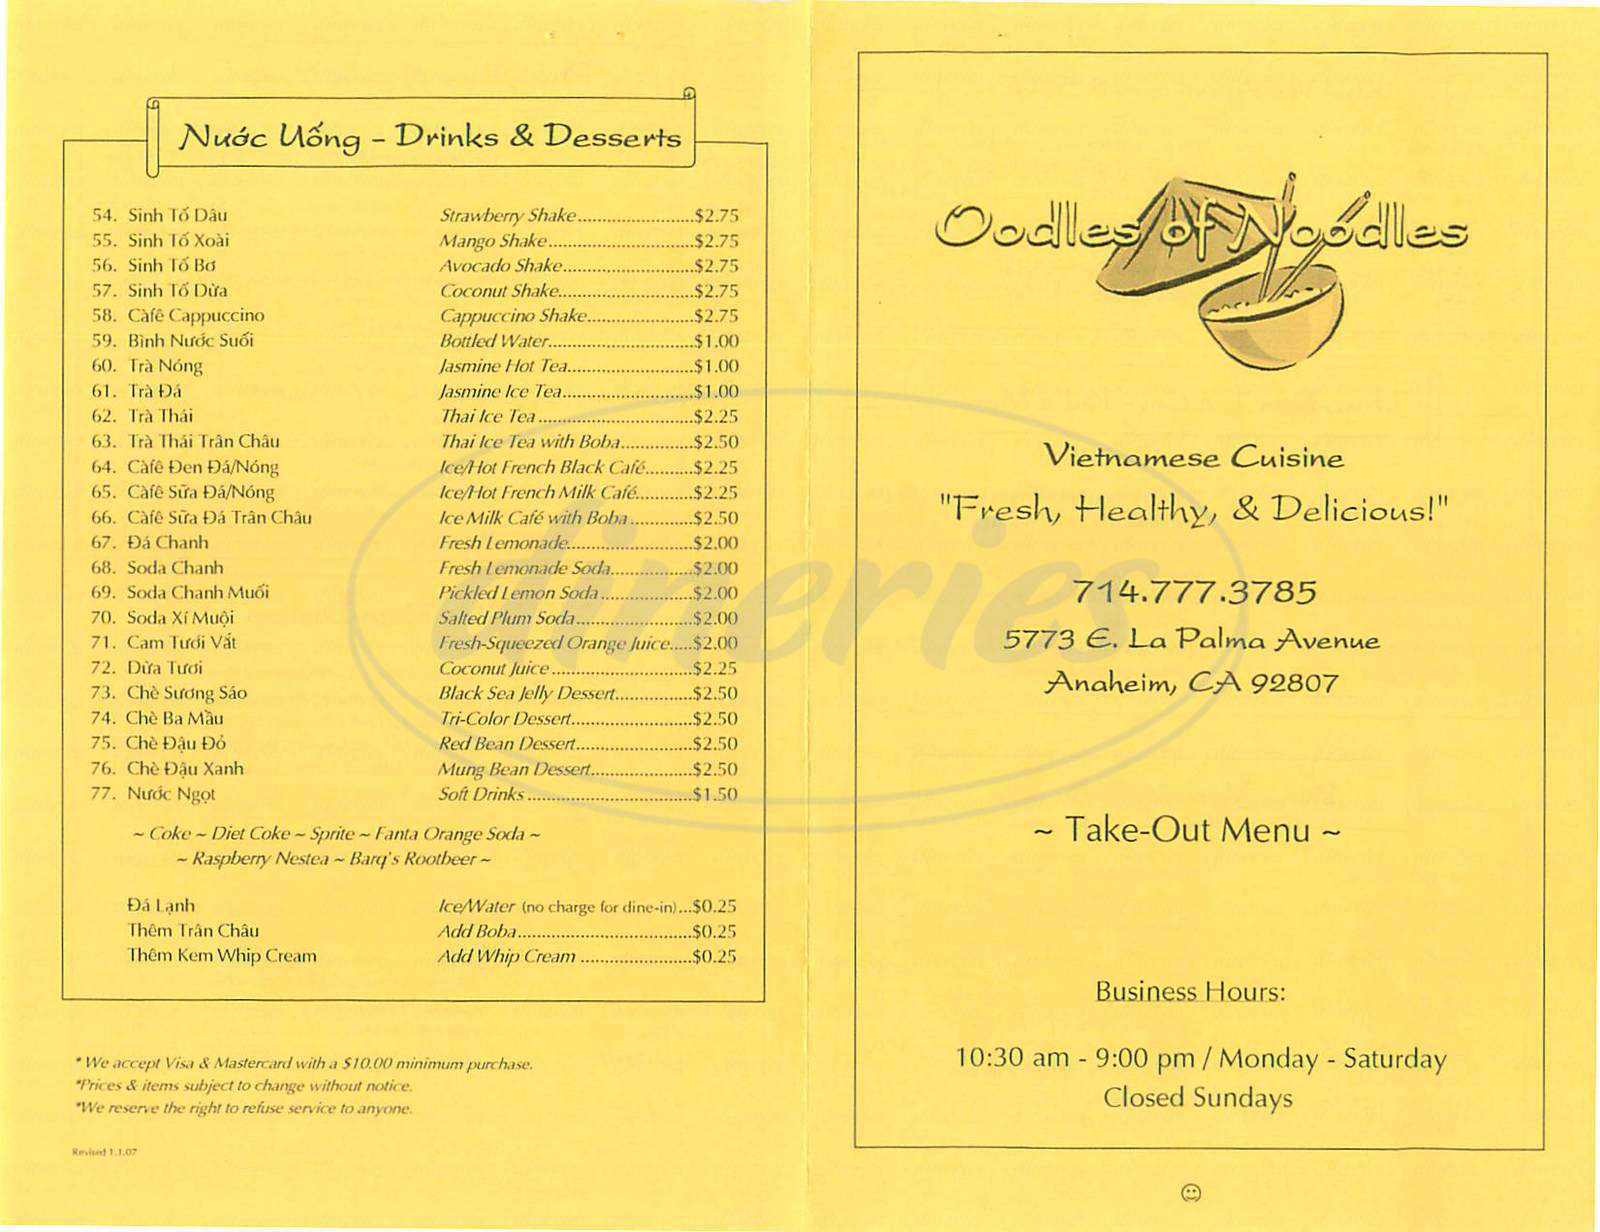 menu for Oodles of Noodles